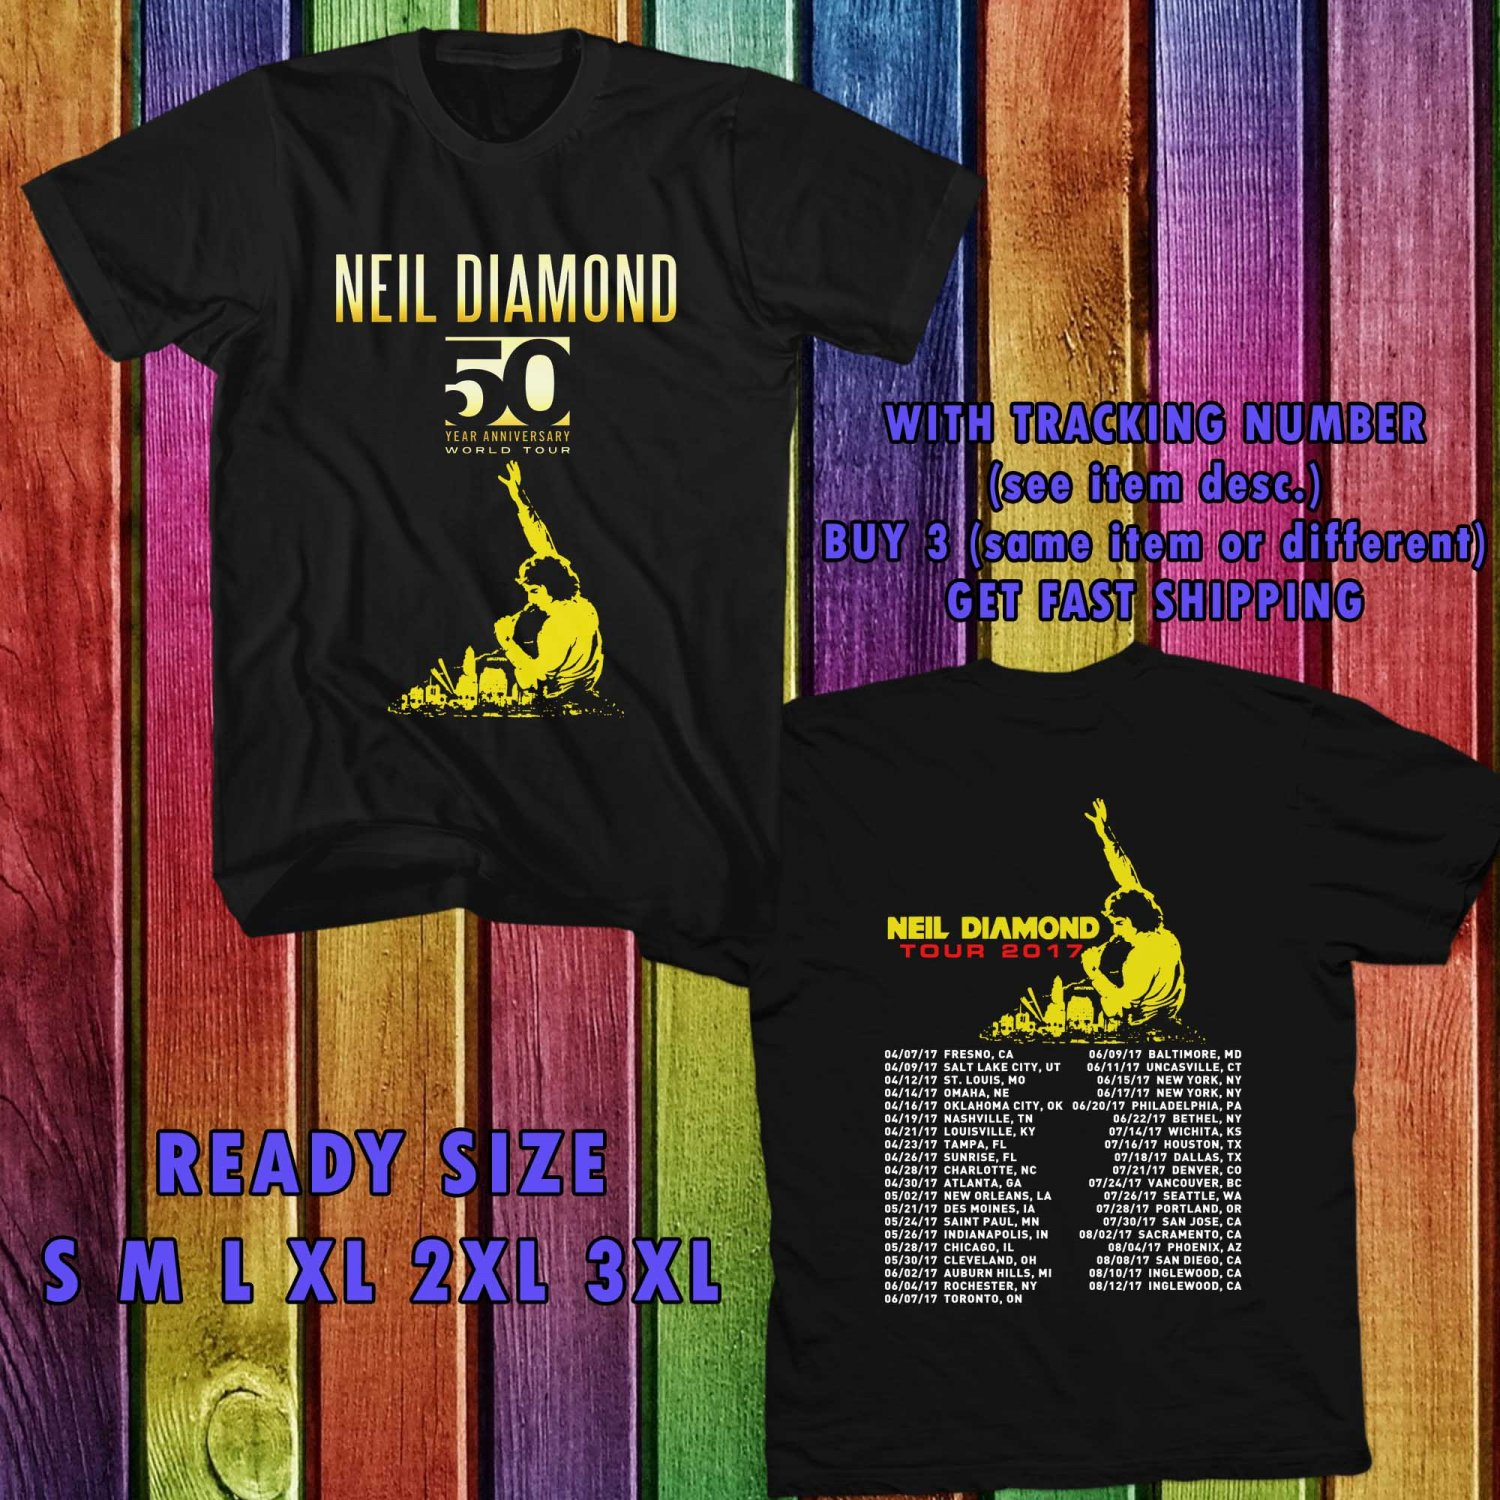 WOW NEIL DIAMOND 50 YEARS TOUR 2017 BLACK TEE S-3XL ASTR 954